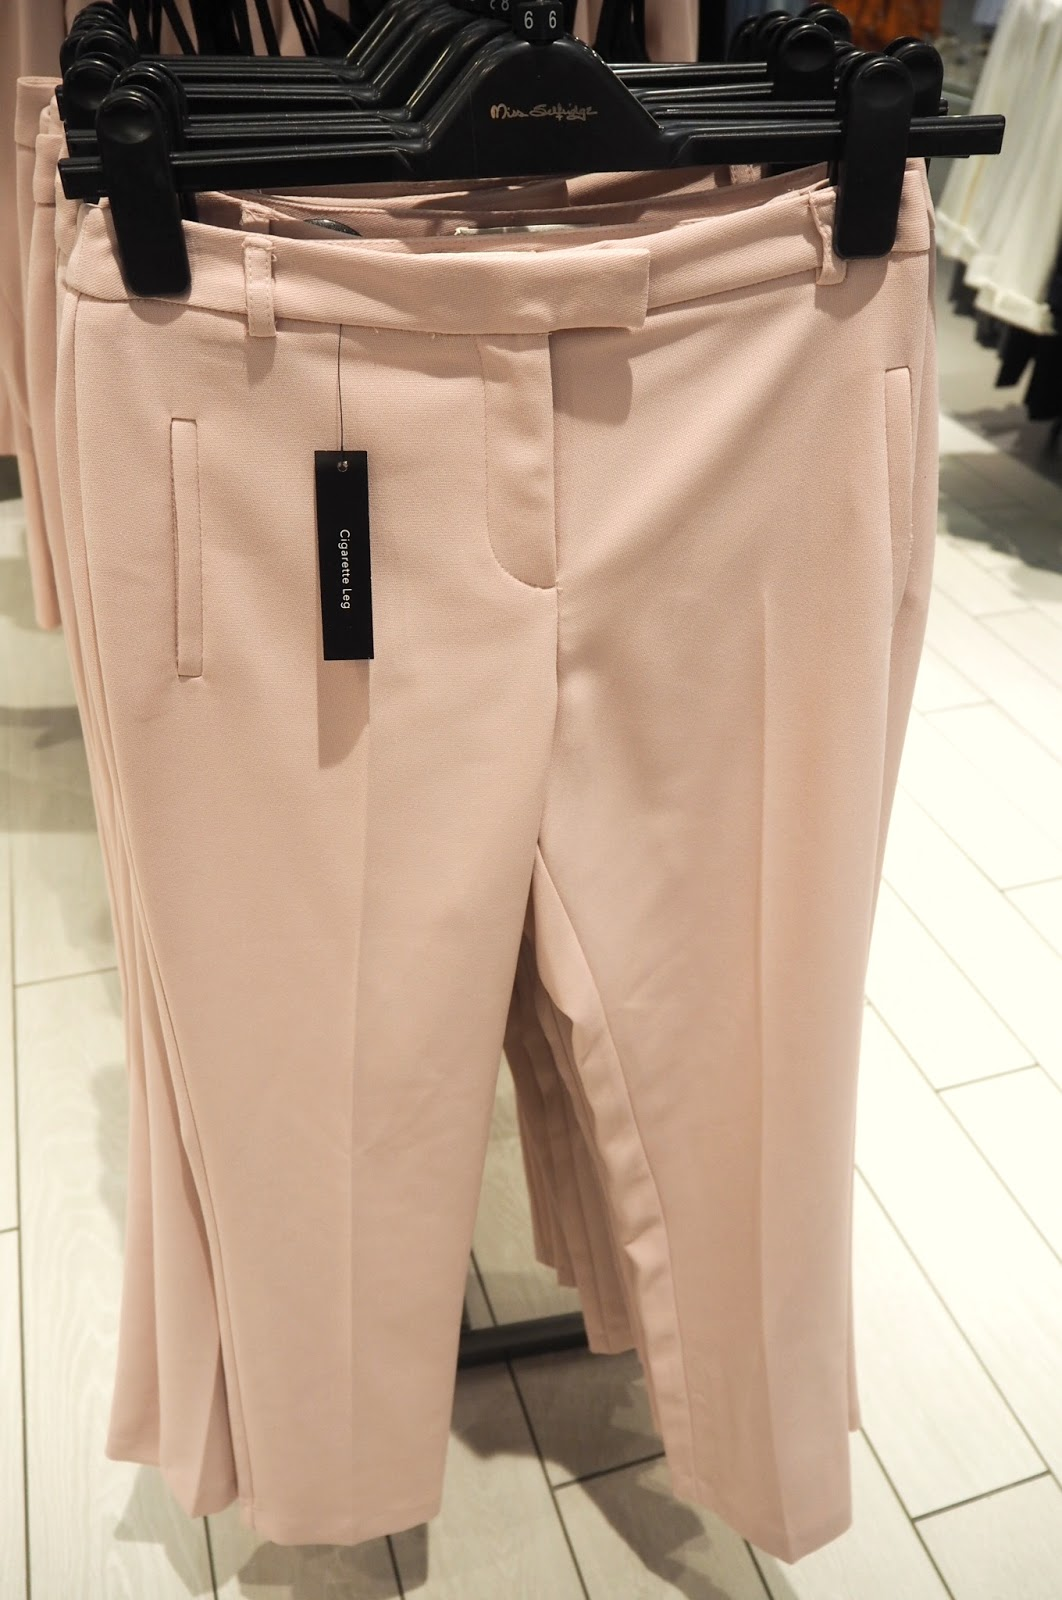 Miss Selfridge Pink Trouser-Suit Co-Ord